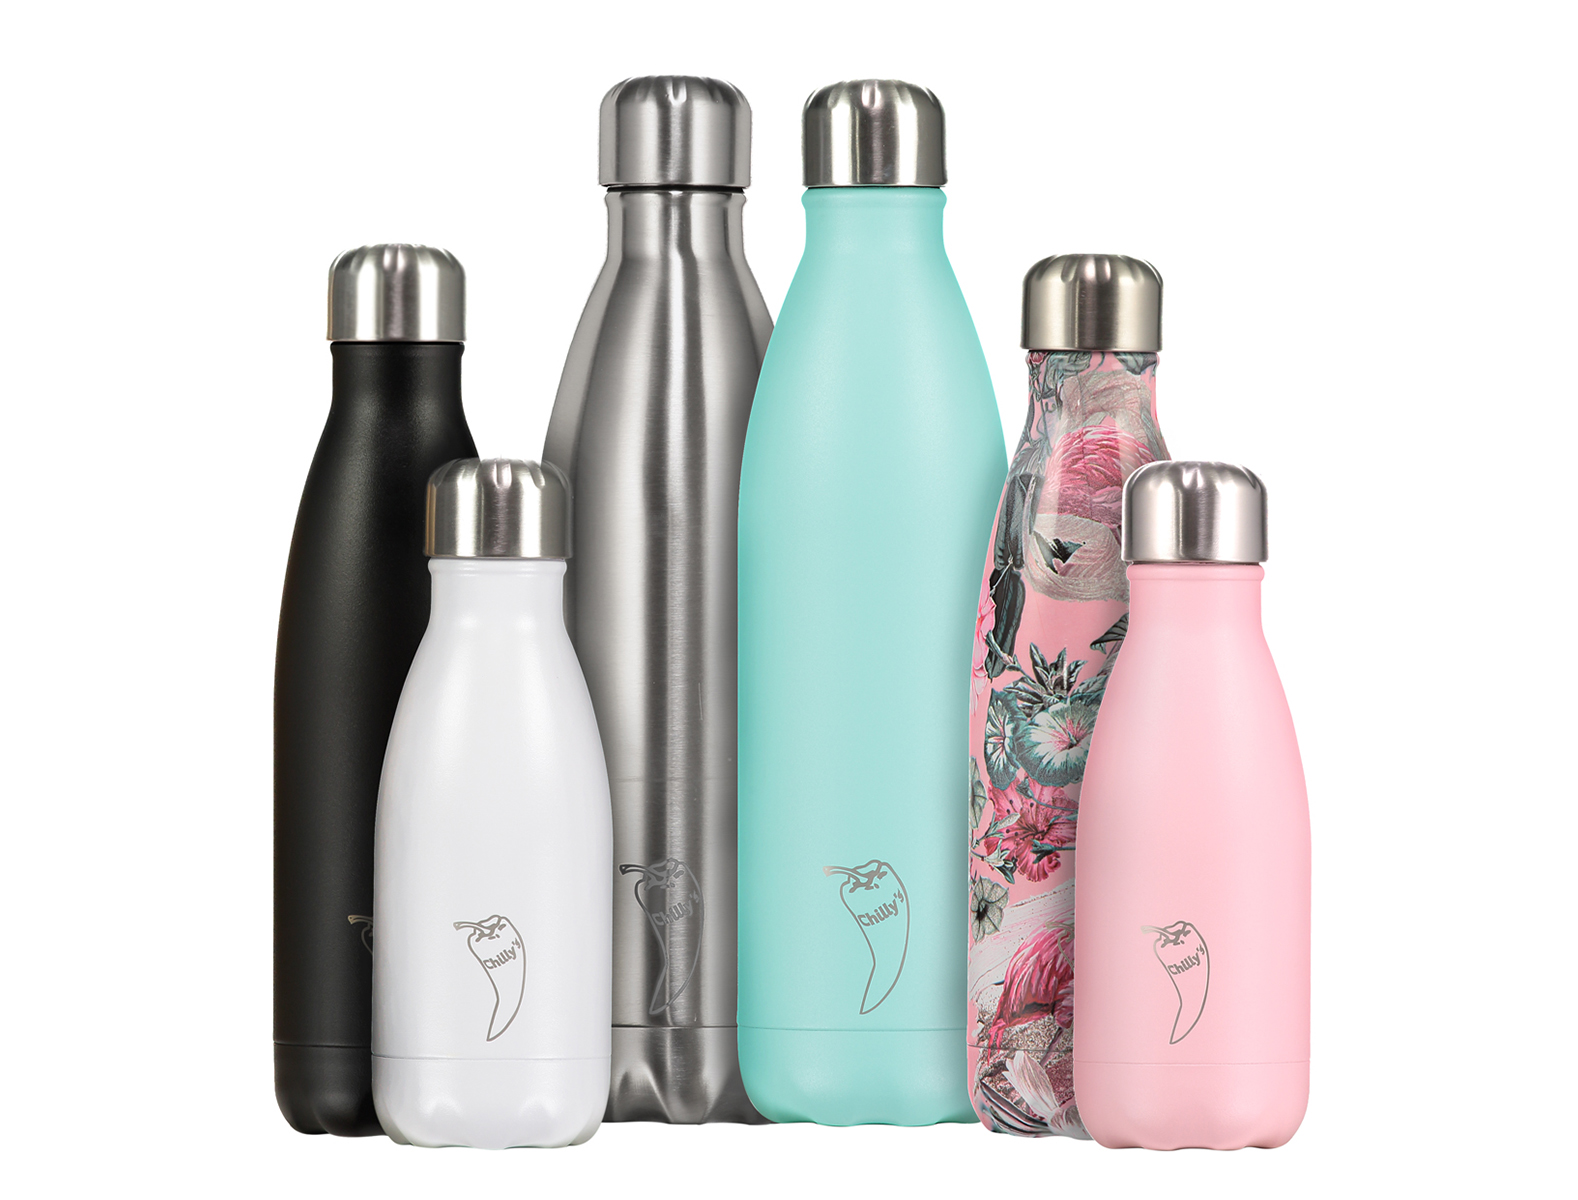 These Chilly's Bottles were all shot independently which is why the light reflections are the same on all of them